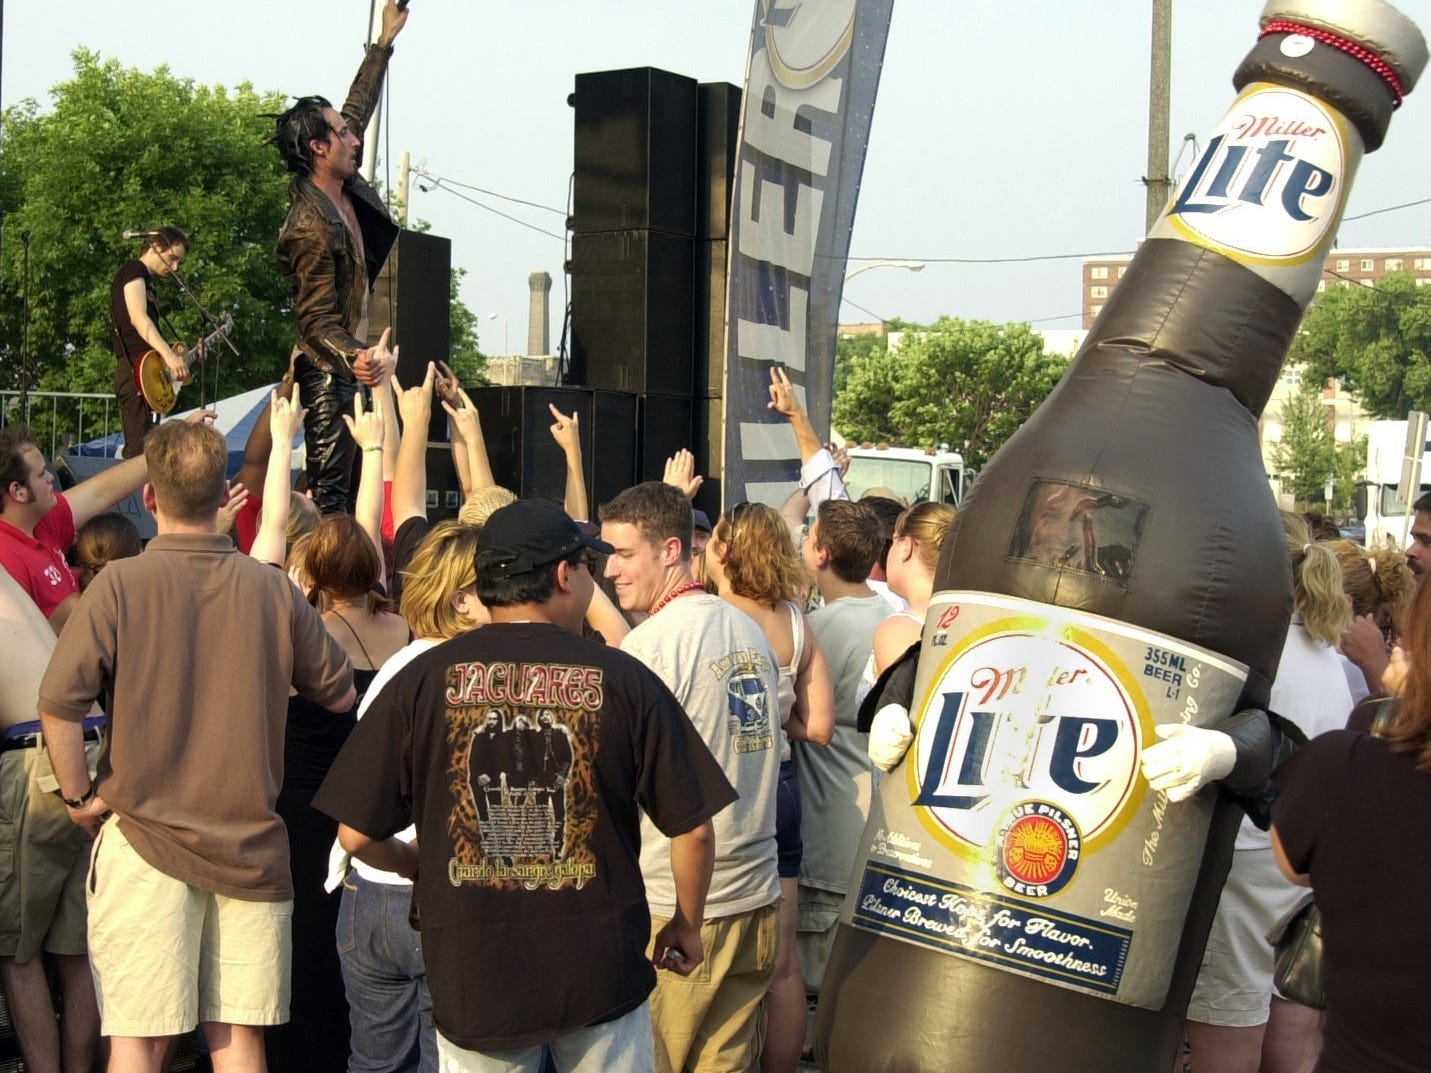 A man dressed as a beer bottle dances with others in 2002.